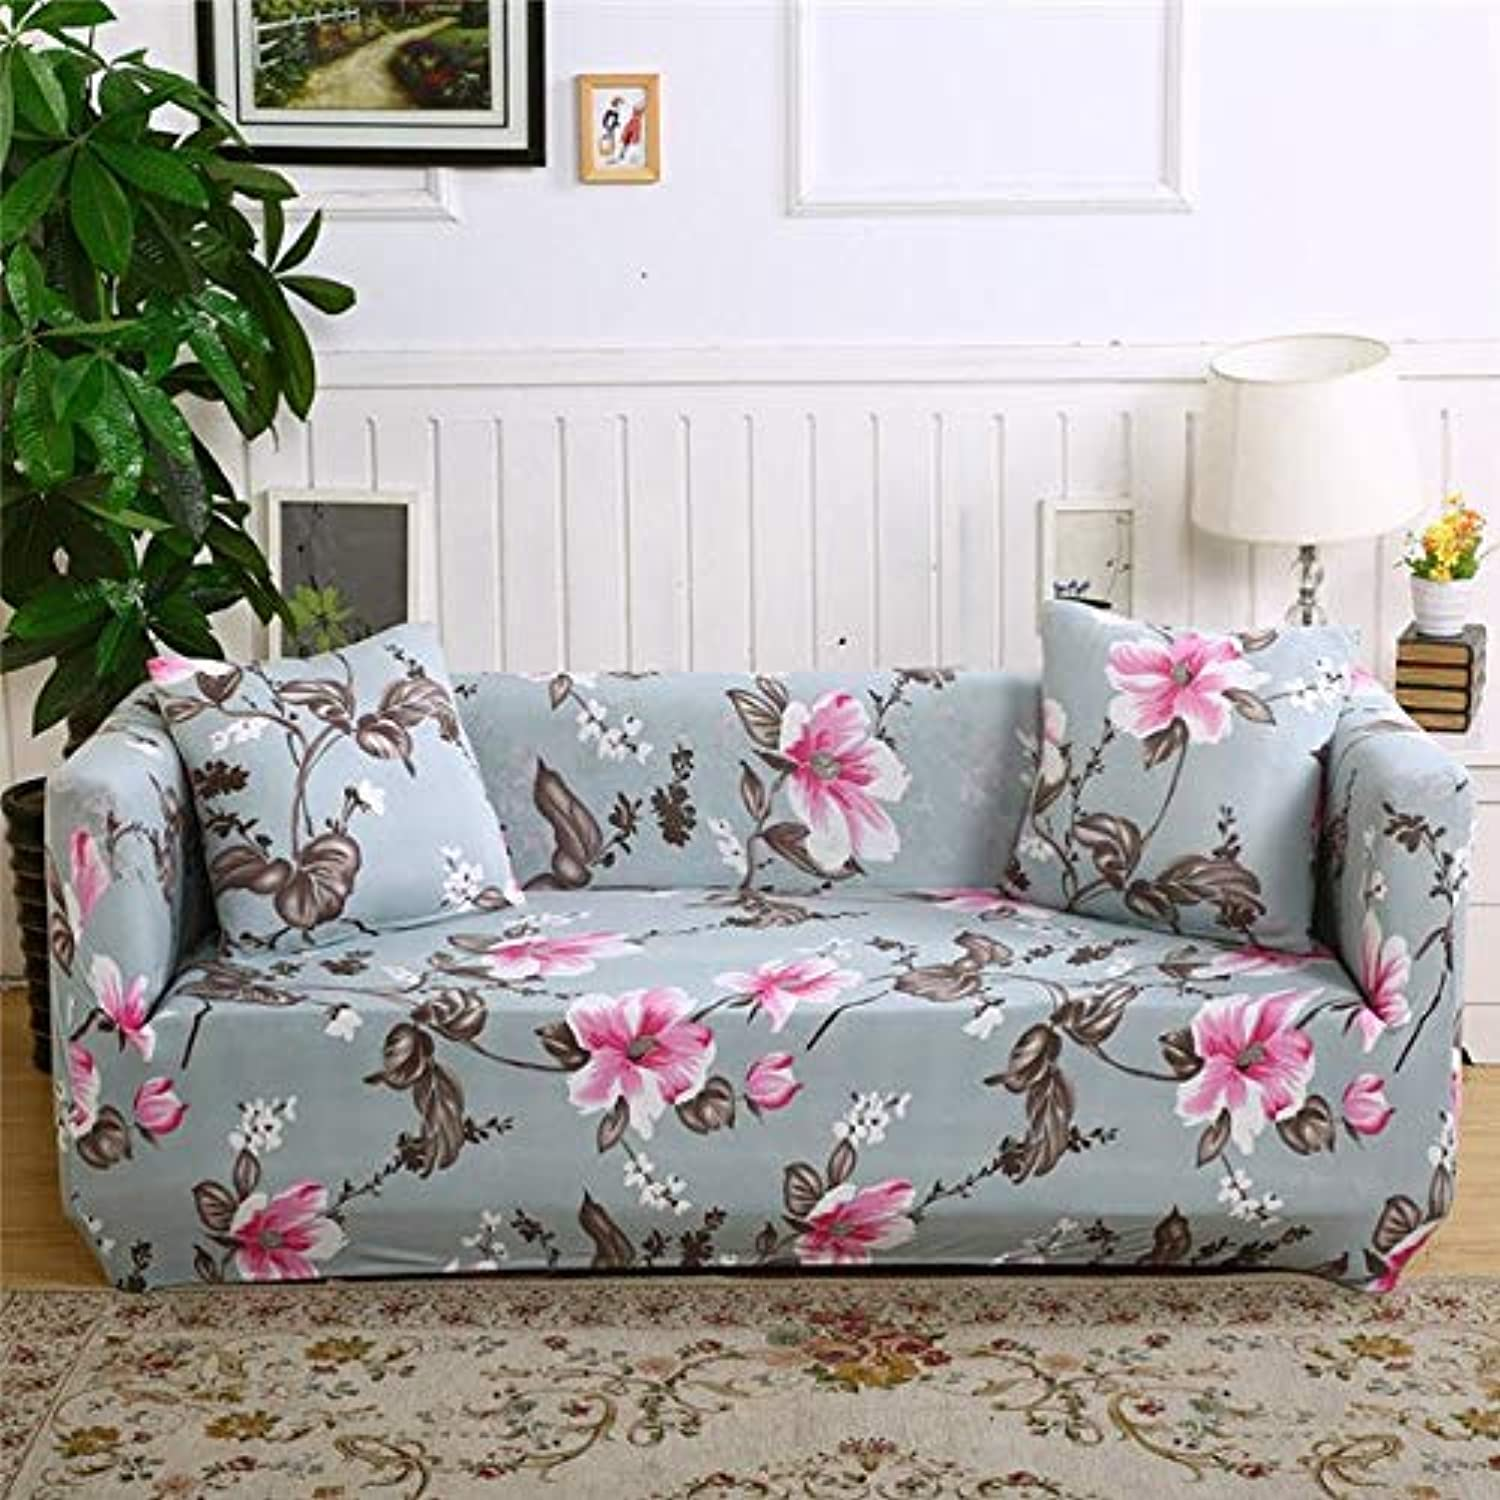 Farmerly Floral Printed Elastic Couch Cover Stretch Predector Sofa Wrap Tight Slipcovers All-Inclusive Sofa Cover Anti-Slip Sofa Towel   6, 1.seat 90-140CM